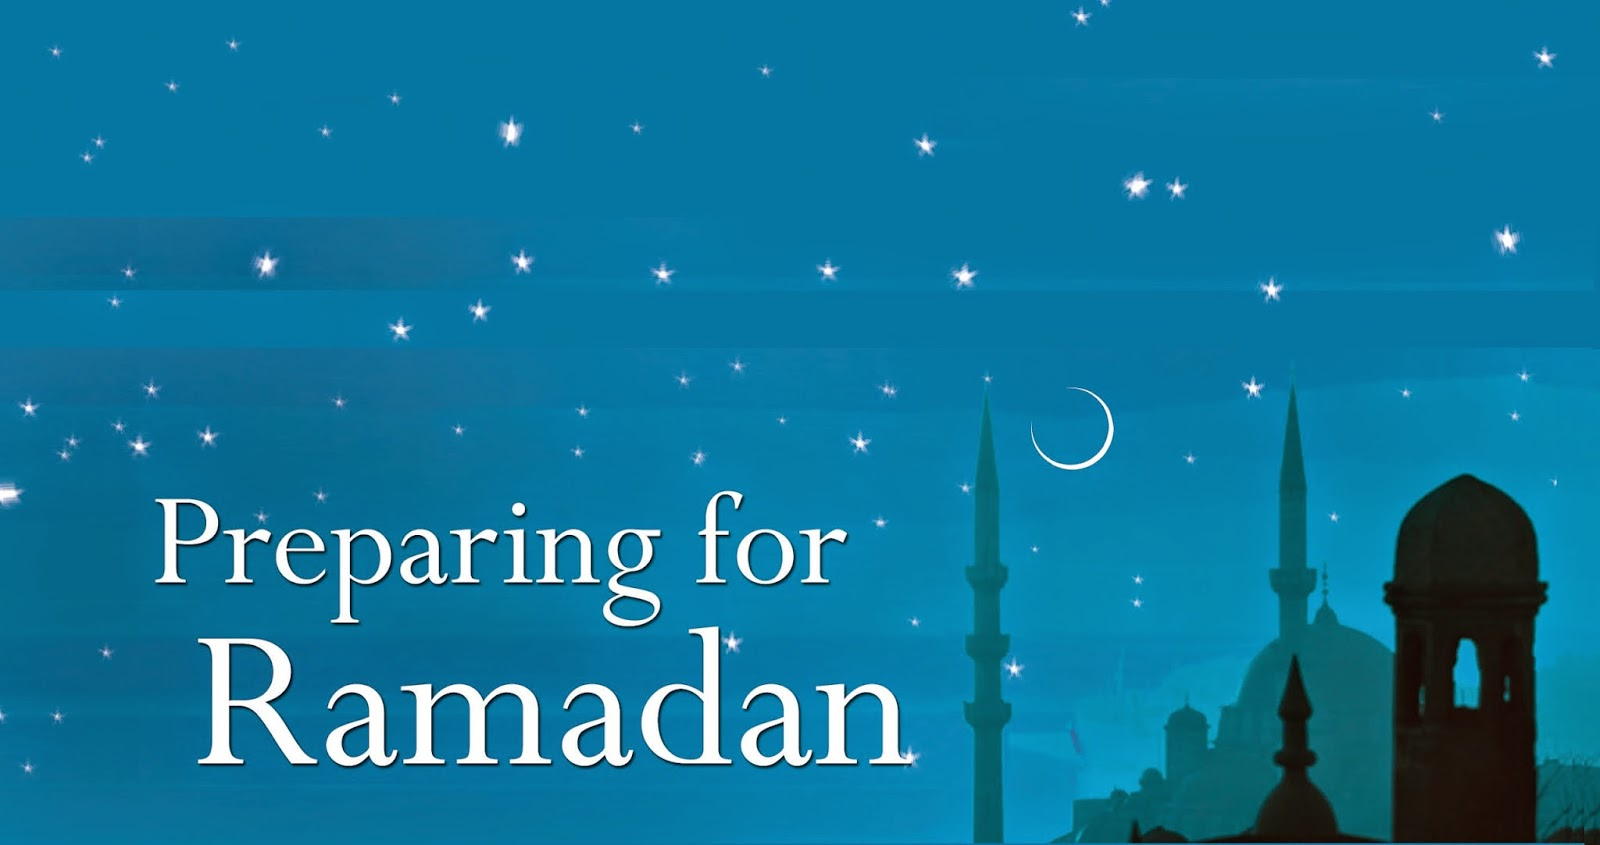 Significance of fasting in the month of Ramadan